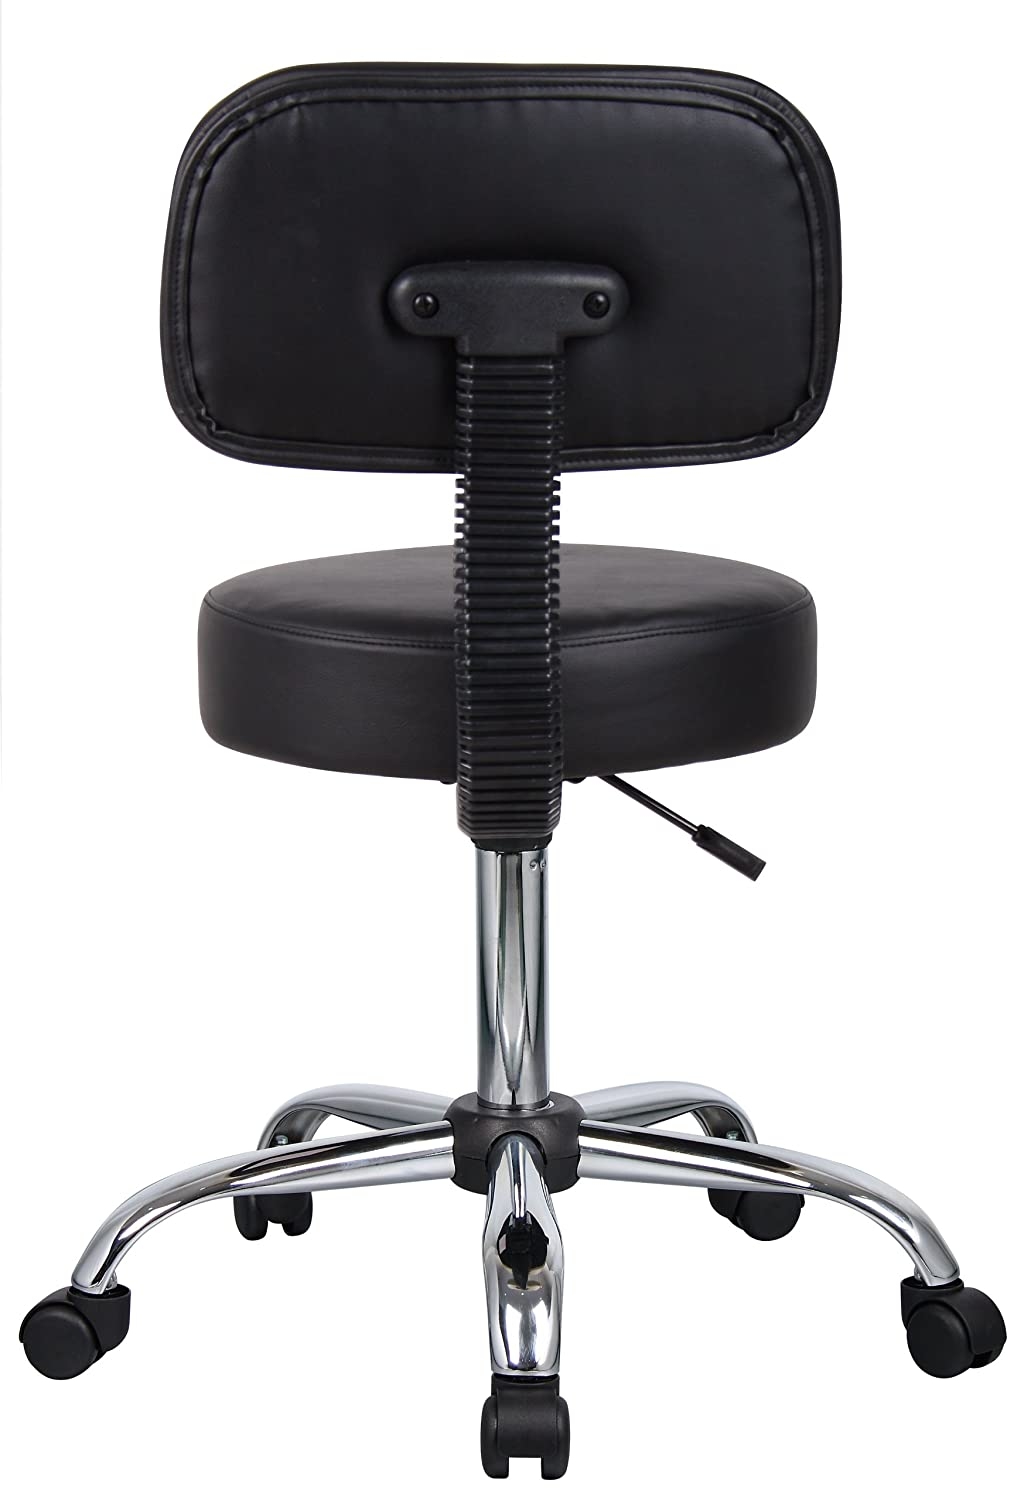 amazoncom boss office products b245bk be well medical spa stool with back in black kitchen u0026 dining